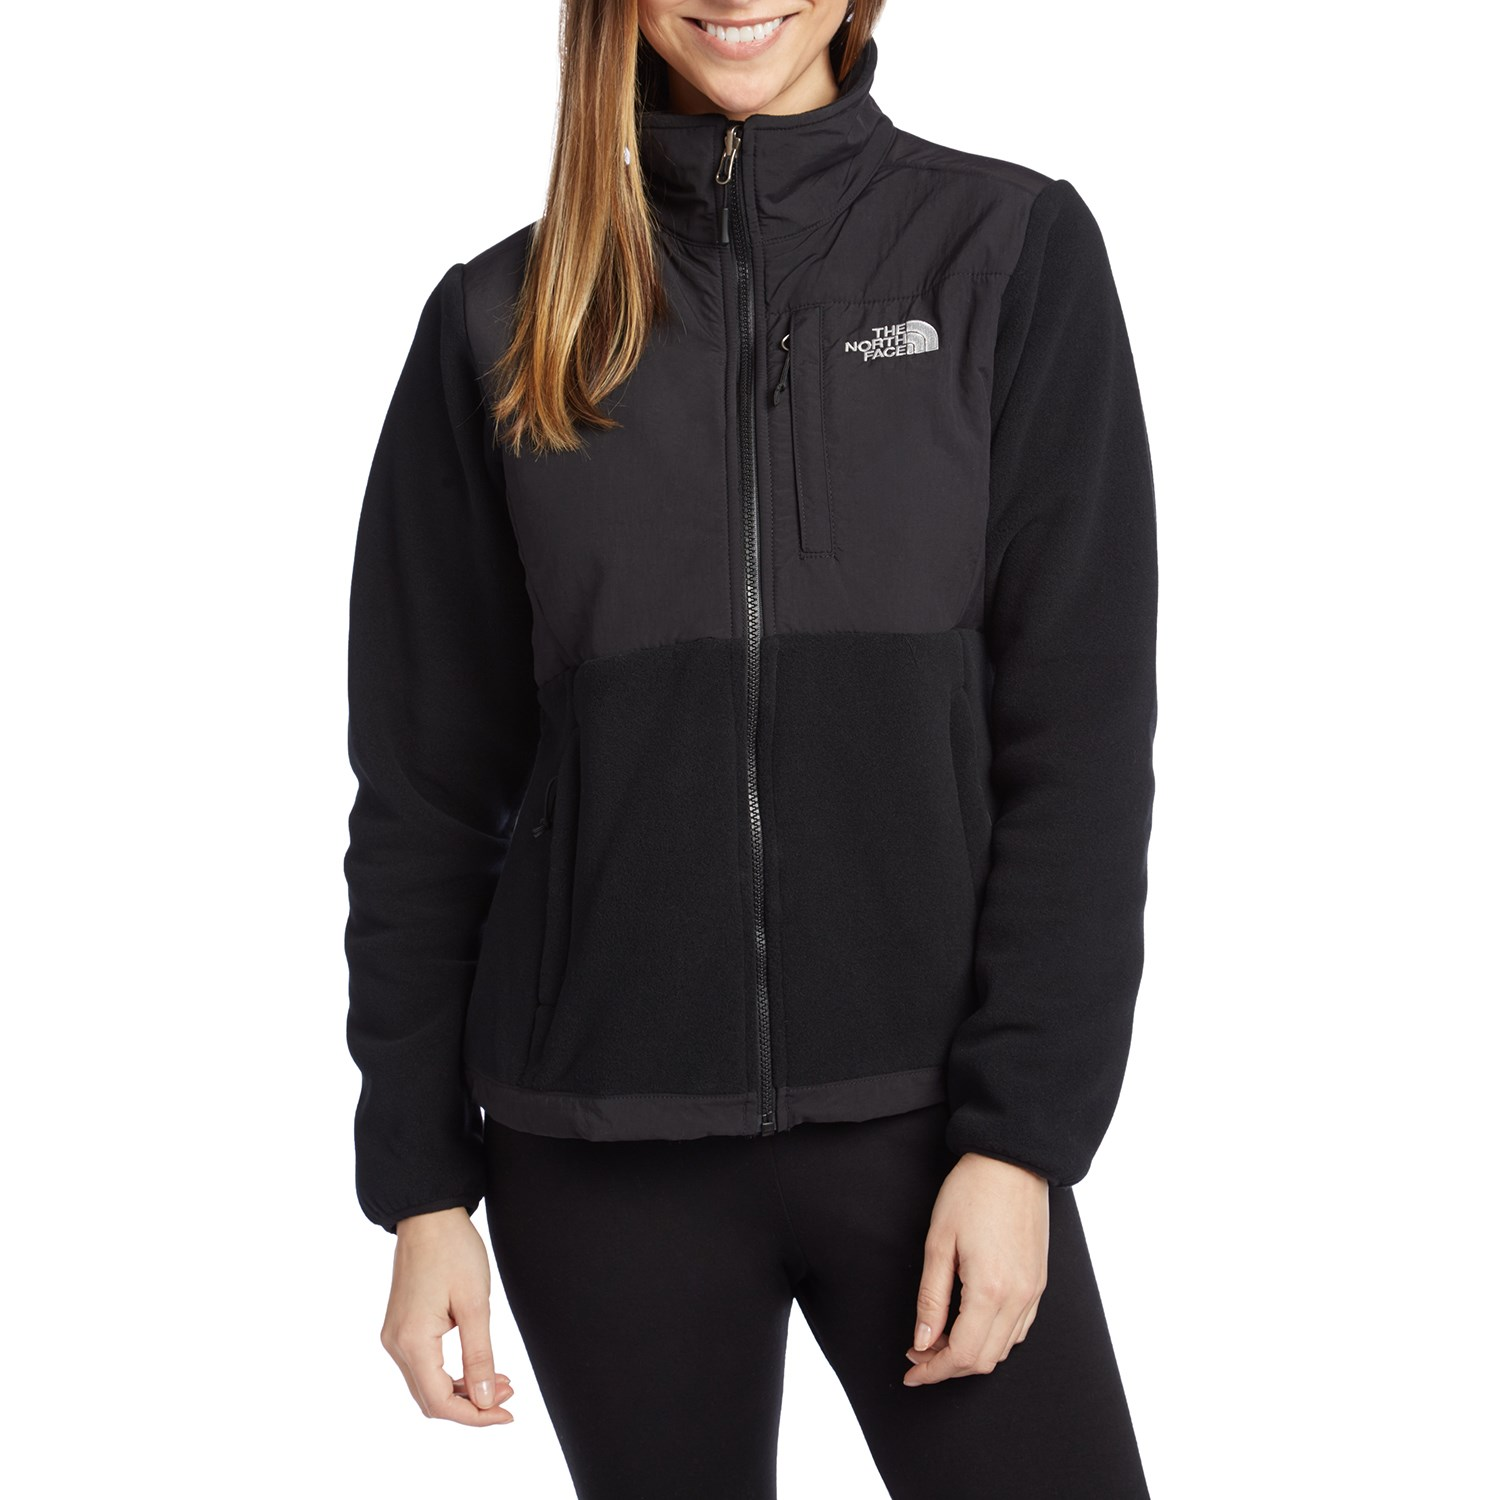 ab646c5d6 The North Face Denali Jacket - Women's